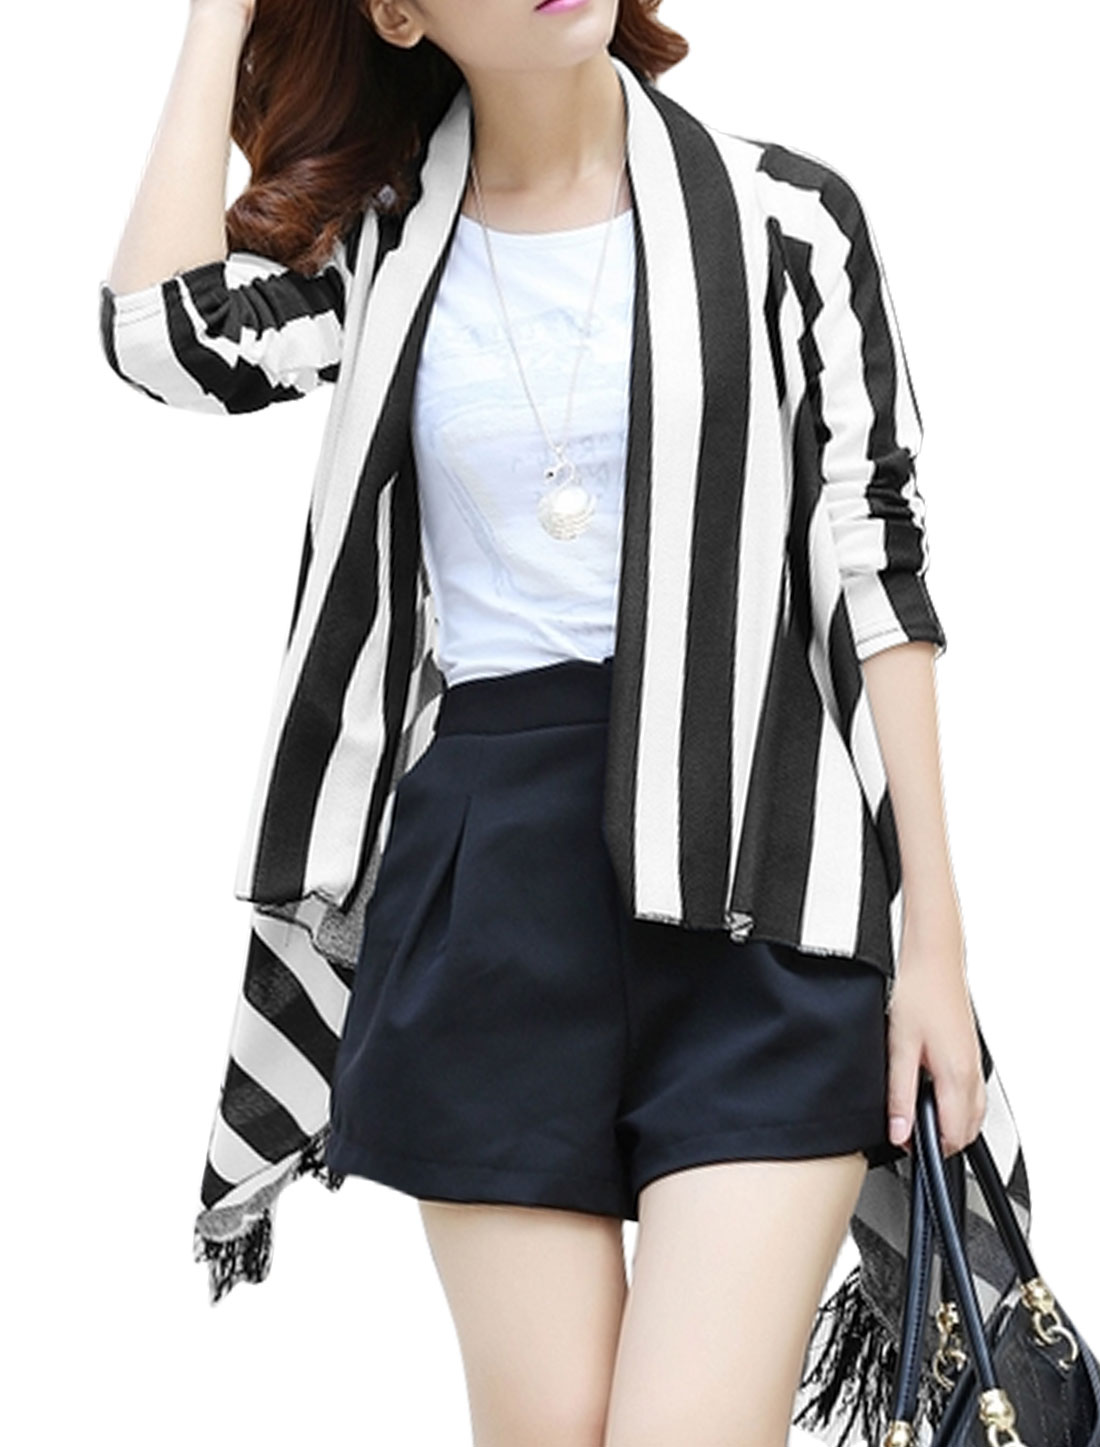 Women Shawl Collar Vertical Stripes Leisure Cardigan Black White XS